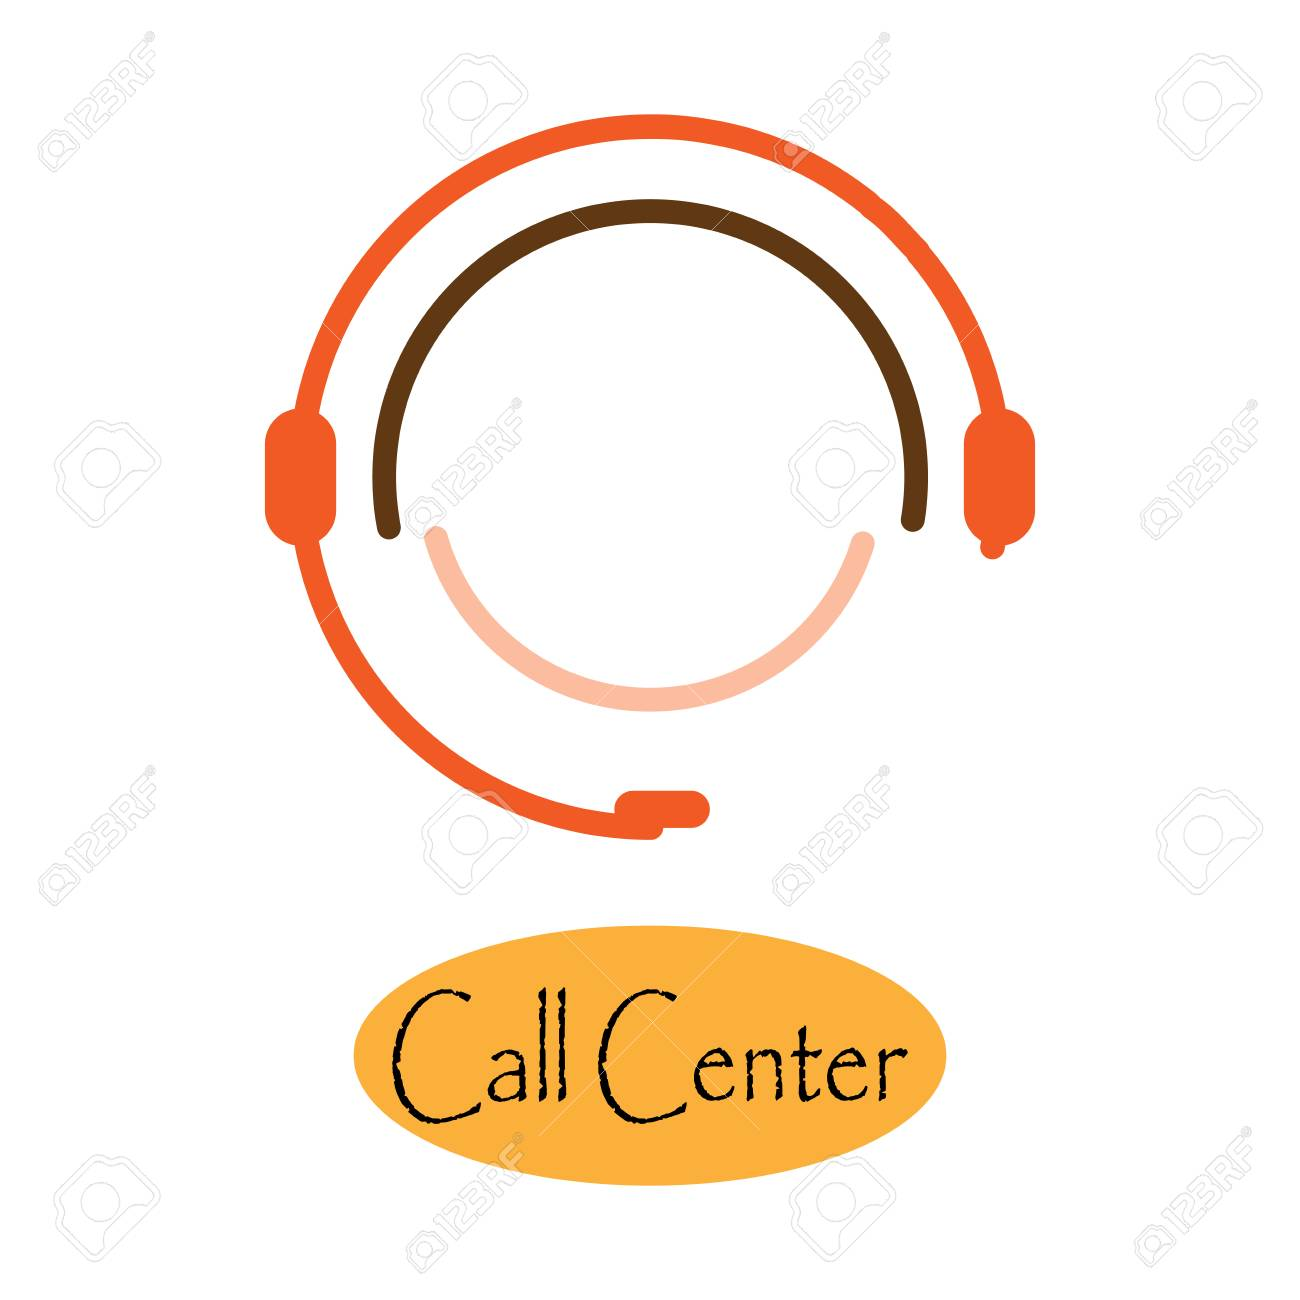 icon emblem of the call center logo with headset on head vector royalty free cliparts vectors and stock illustration image 111711913 icon emblem of the call center logo with headset on head vector